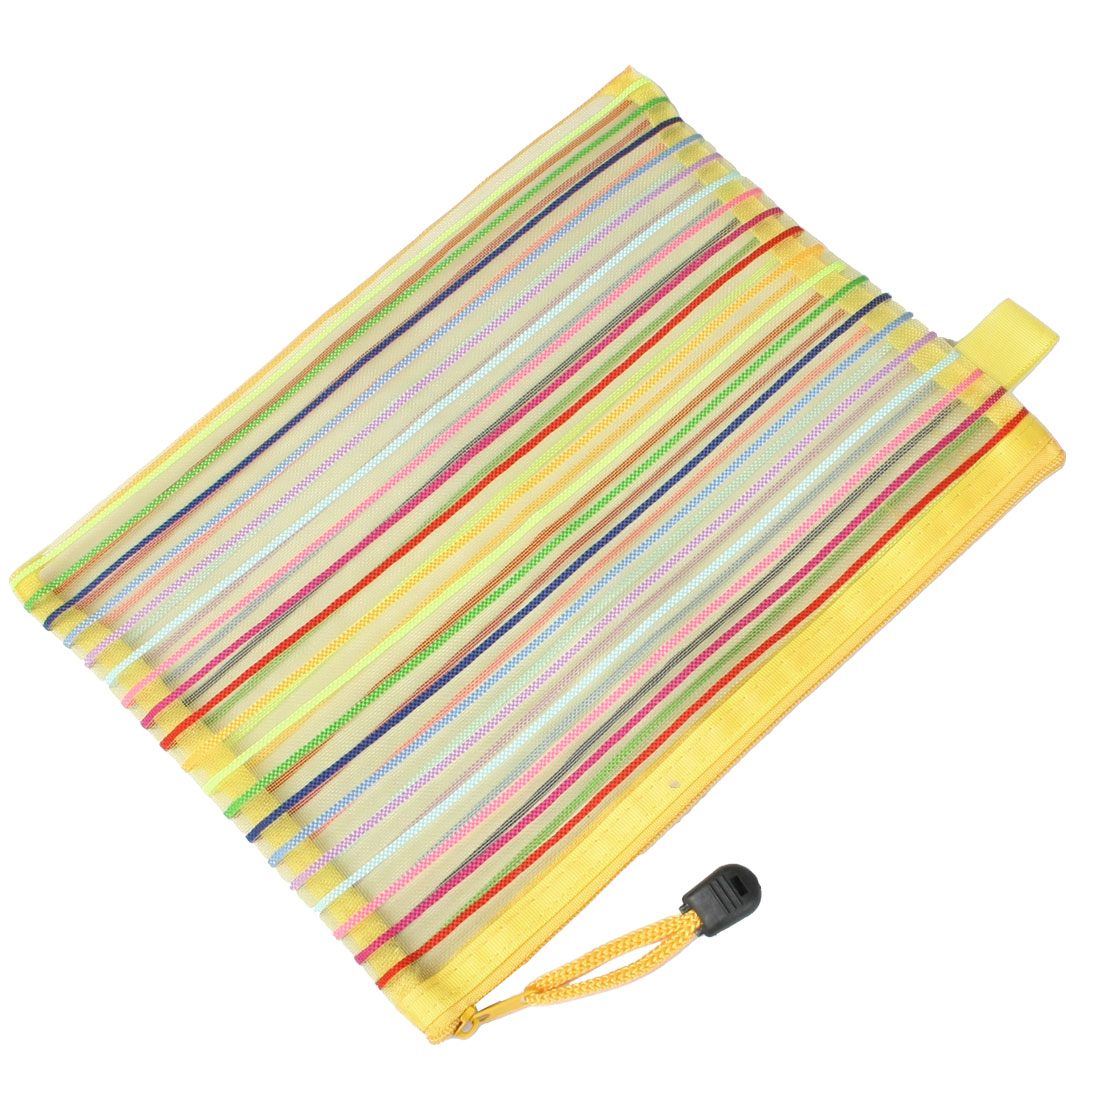 Stripe Pattern Gridding Bag A5 Paper File Folder Organizer Yellow w Strap